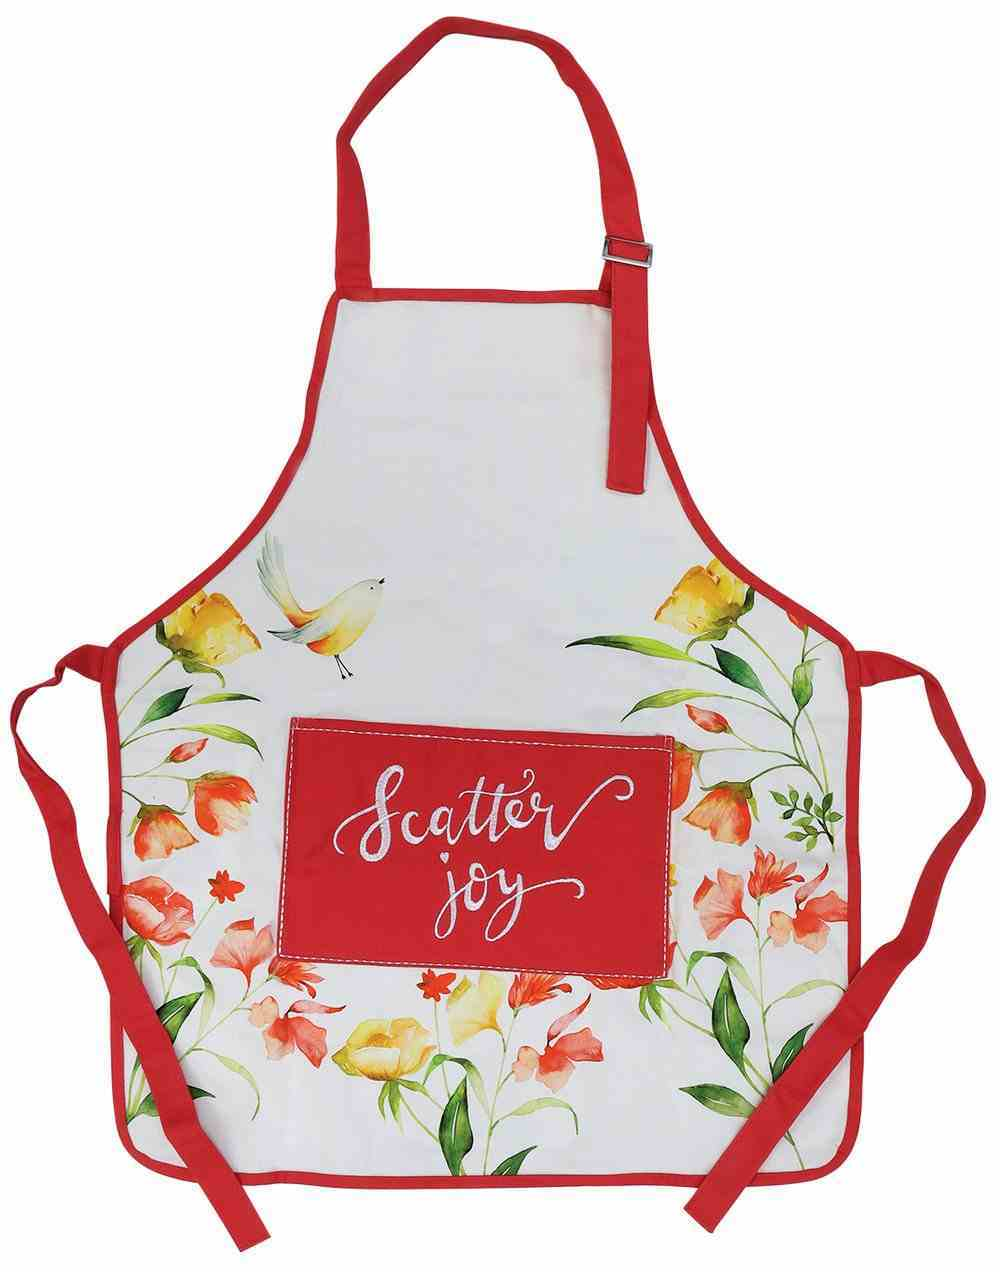 Apron- Scatter Joy, White With Pink Embroidered Pocket and Trim, Floral (Scatter Joy Collection) Soft Goods